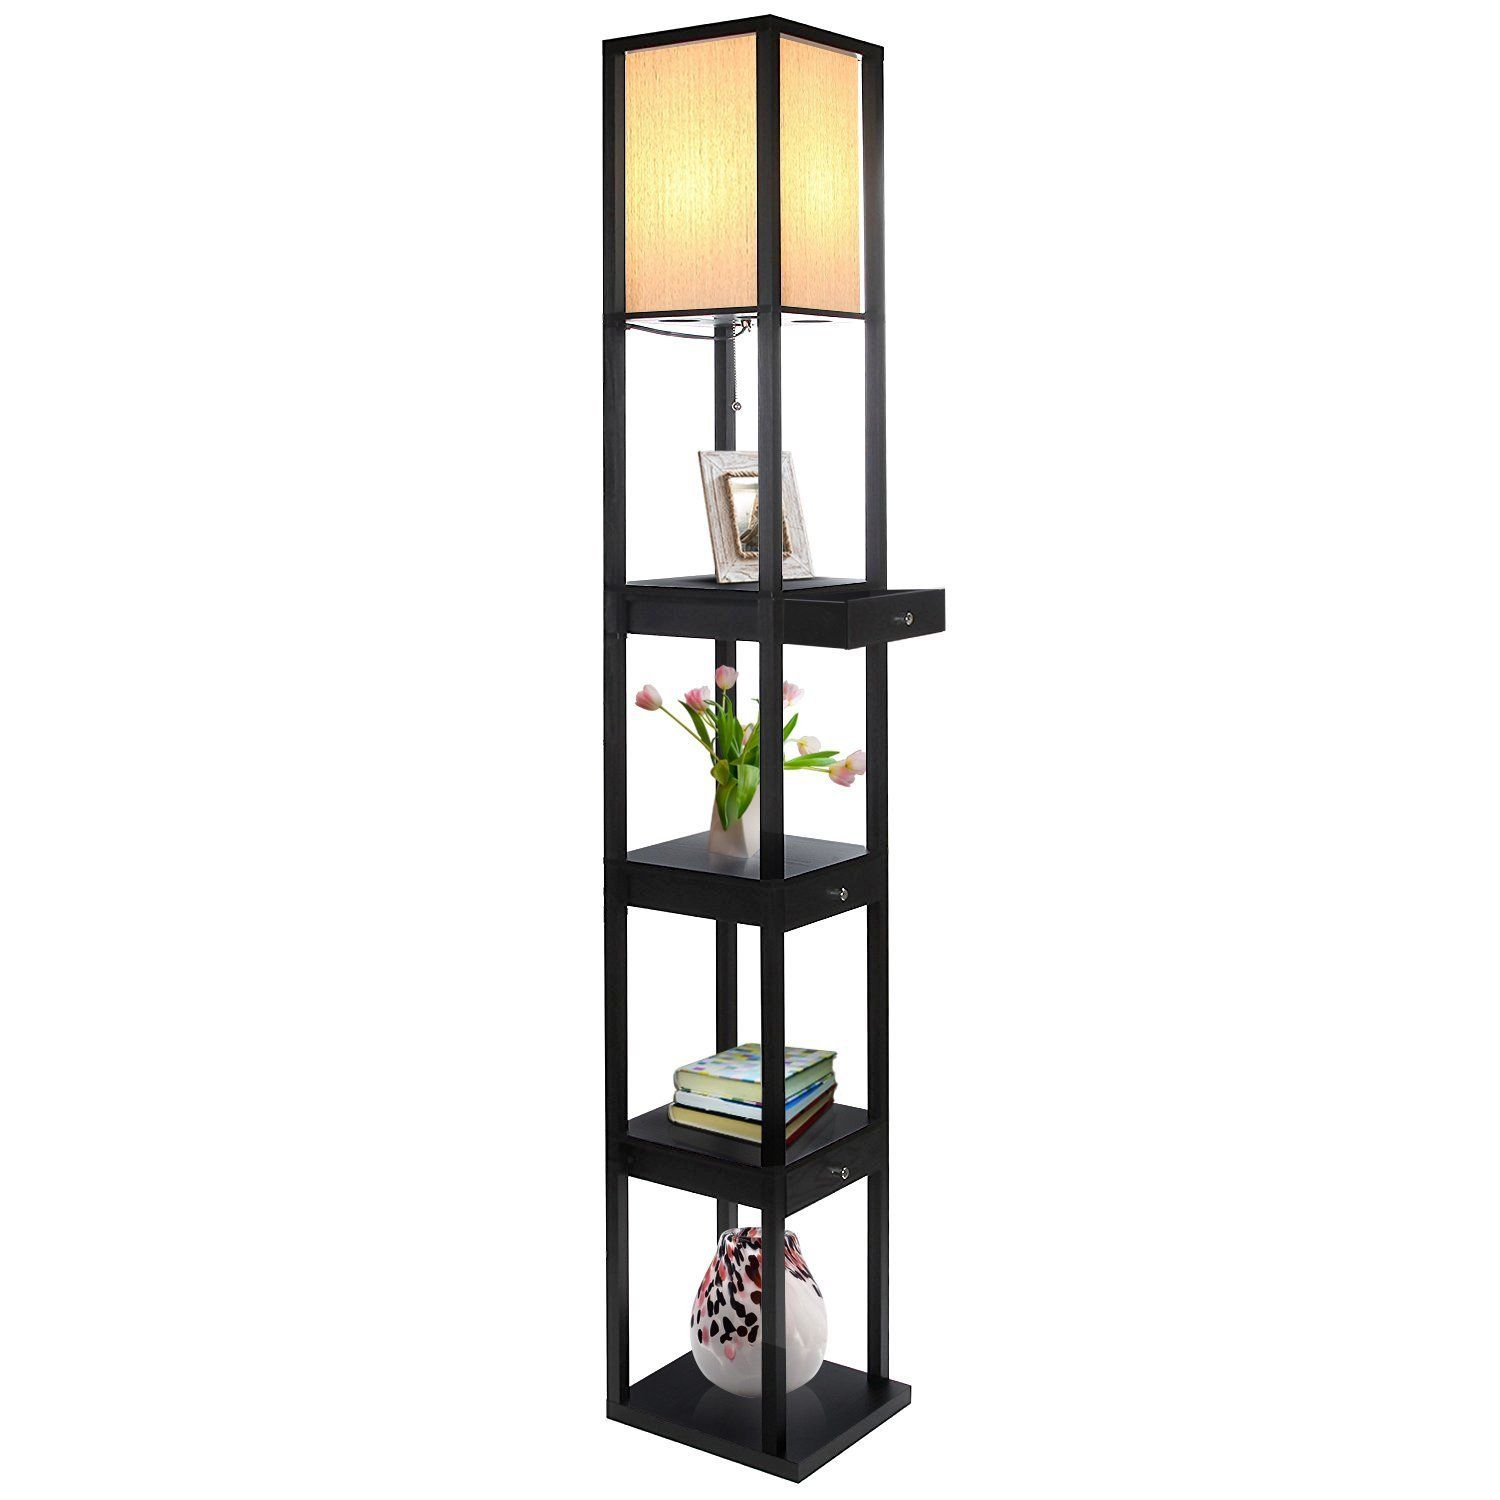 Maxwell Led Shelf Floor Lamp Drawer Edition Modern Asian Style With Wooden Frame Open Box Display Shelves Drawers Standing Soft Diffused Uplight